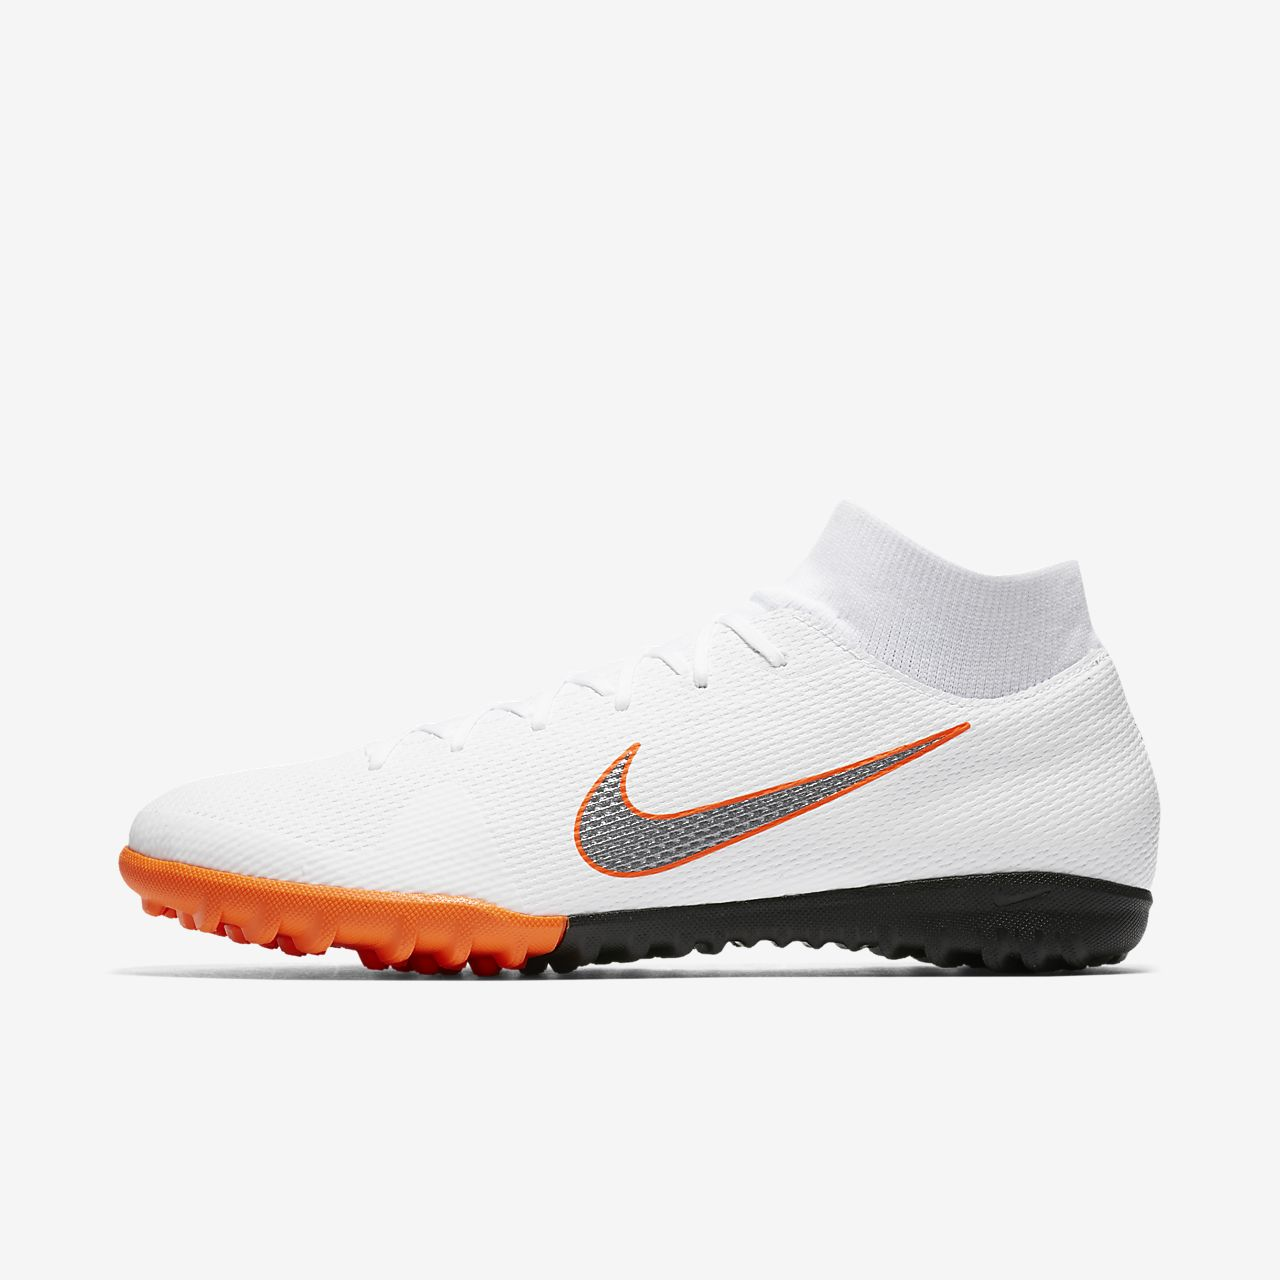 Scarpa da calcio per erba artificiale/sintetica Nike MercurialX Superfly VI Academy Just Do It - Bianco nike bianco